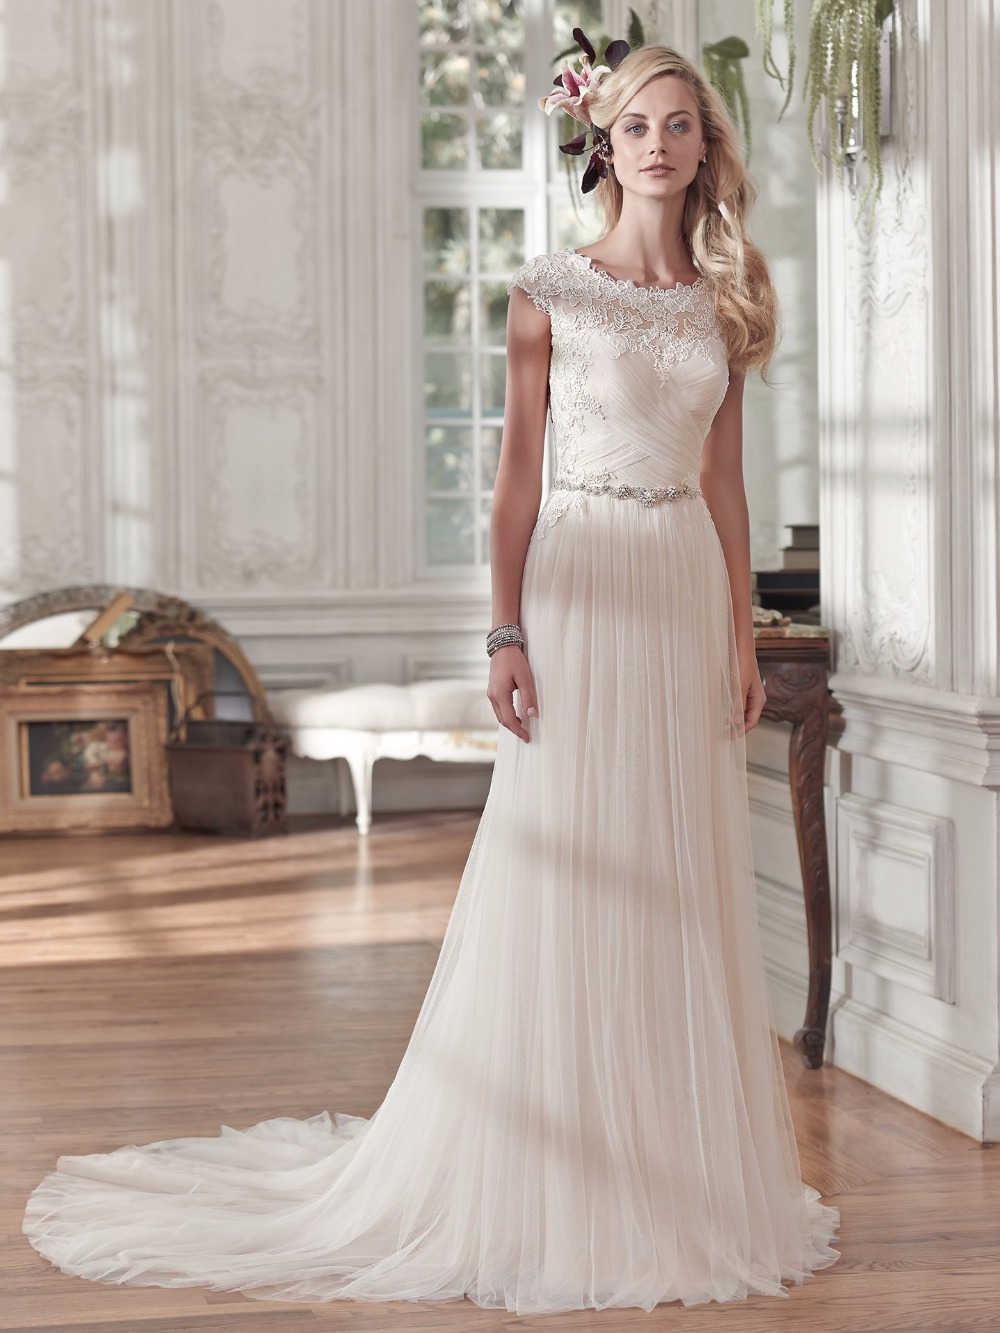 US $135.27 8% OFF|Modest Tulle Beach Boho Wedding Dresses Cap Sleeves Lace  Appliques Ruched Country Western Wedding Gowns 2019 Plus Size Cheap-in ...